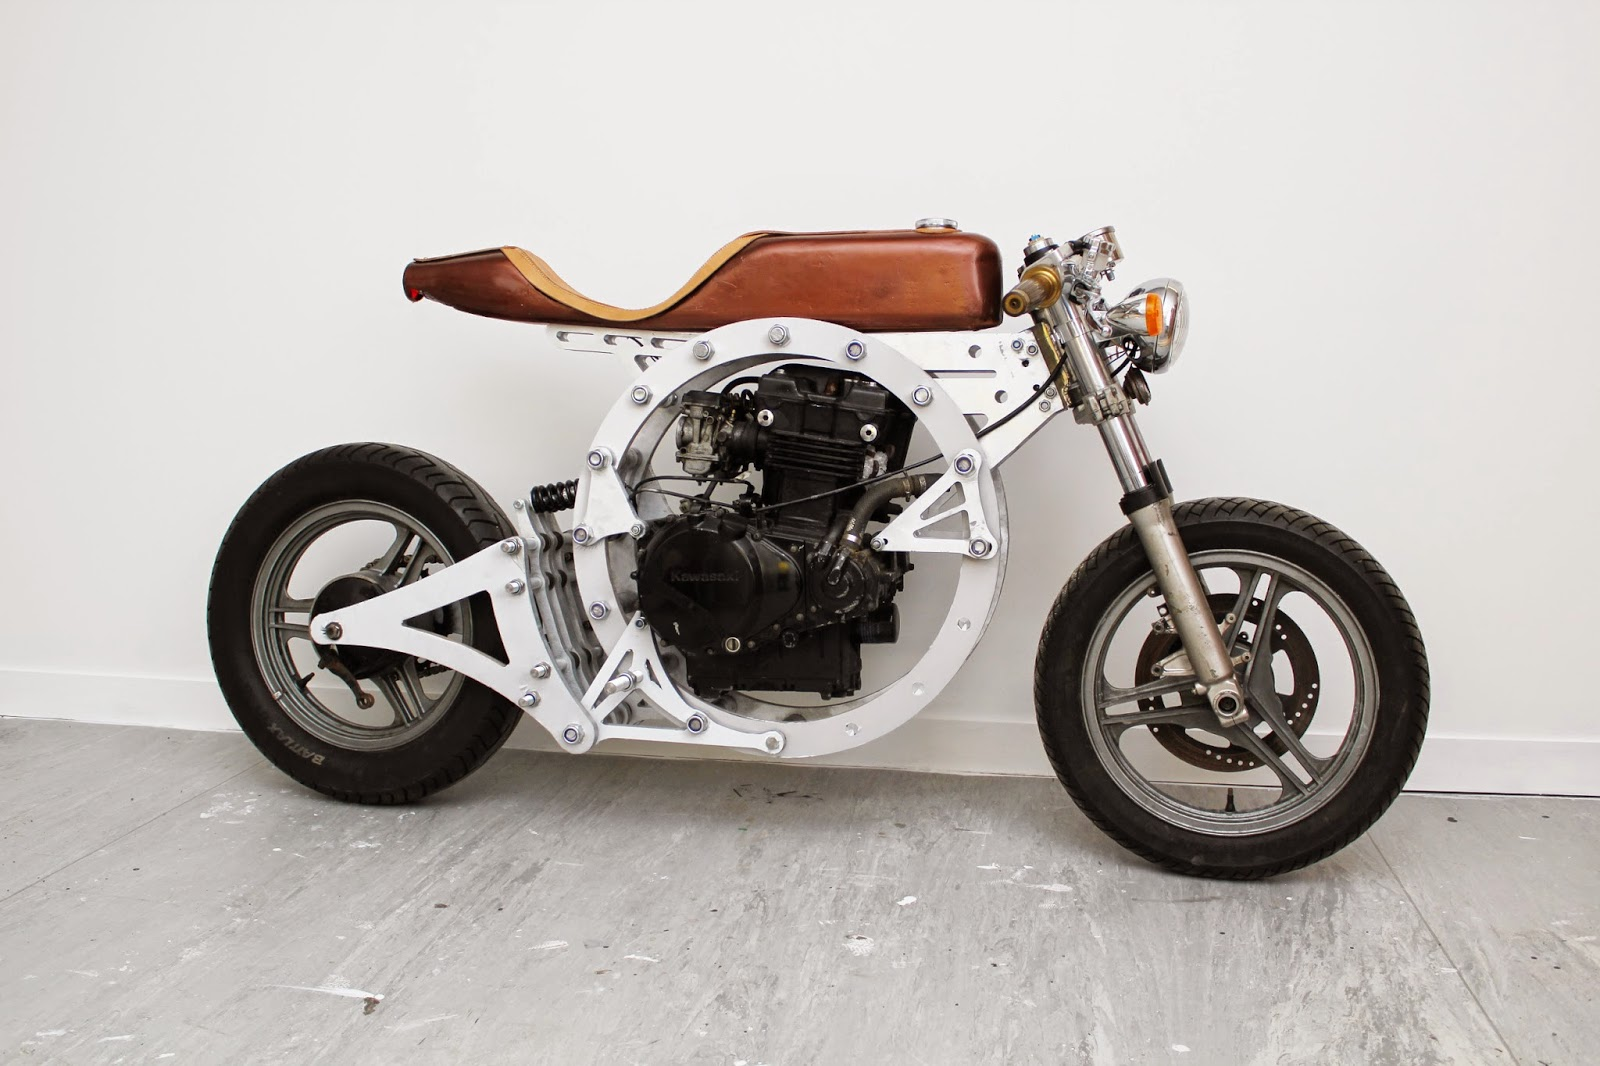 Tinker Open Source Cafe Racer Rocketgarage Cafe Racer